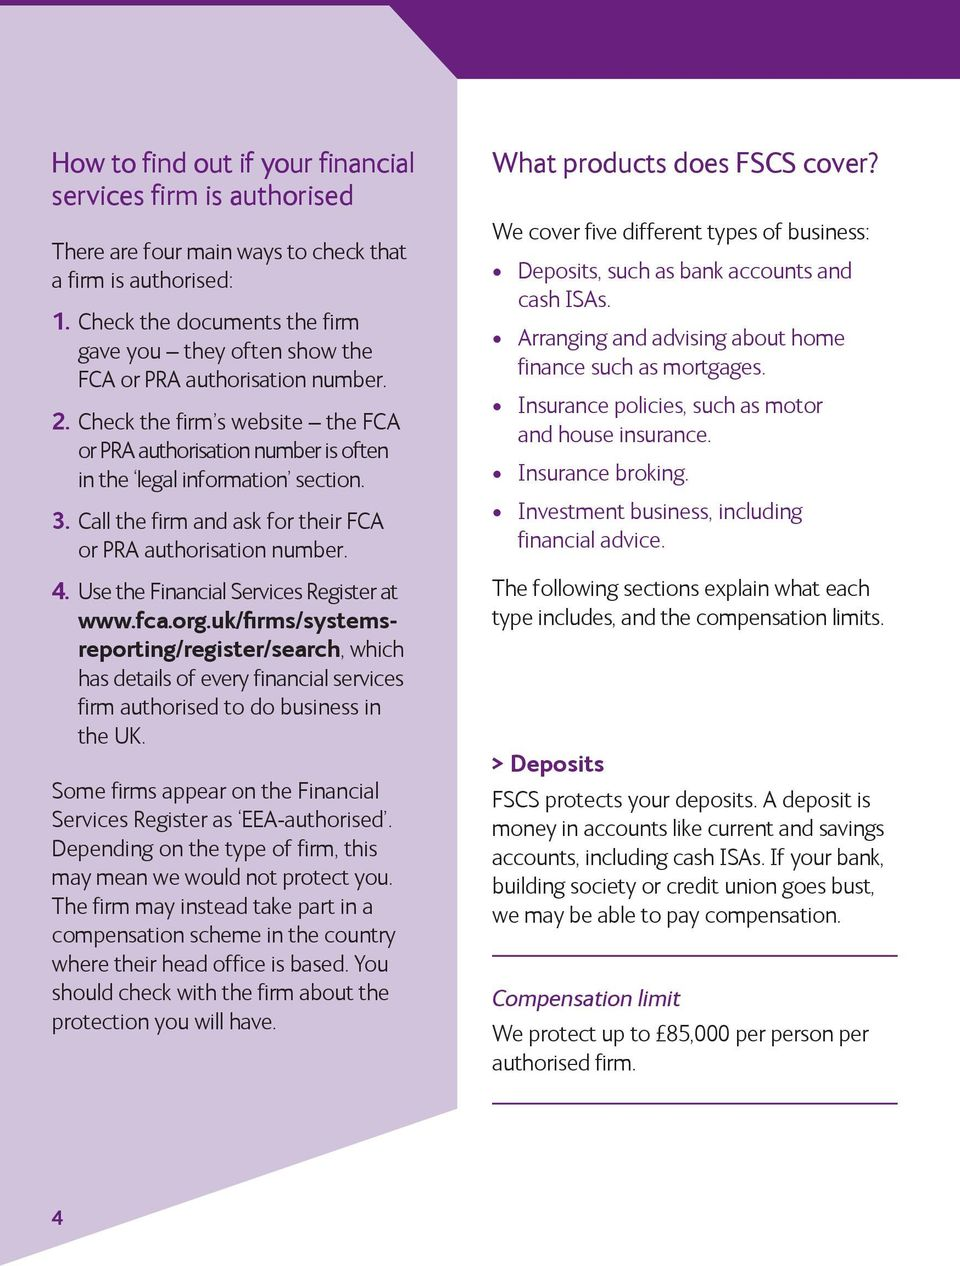 Call the firm and ask for their FCA or PRA authorisation number. 4. Use the Financial Services Register at www.fca.org.